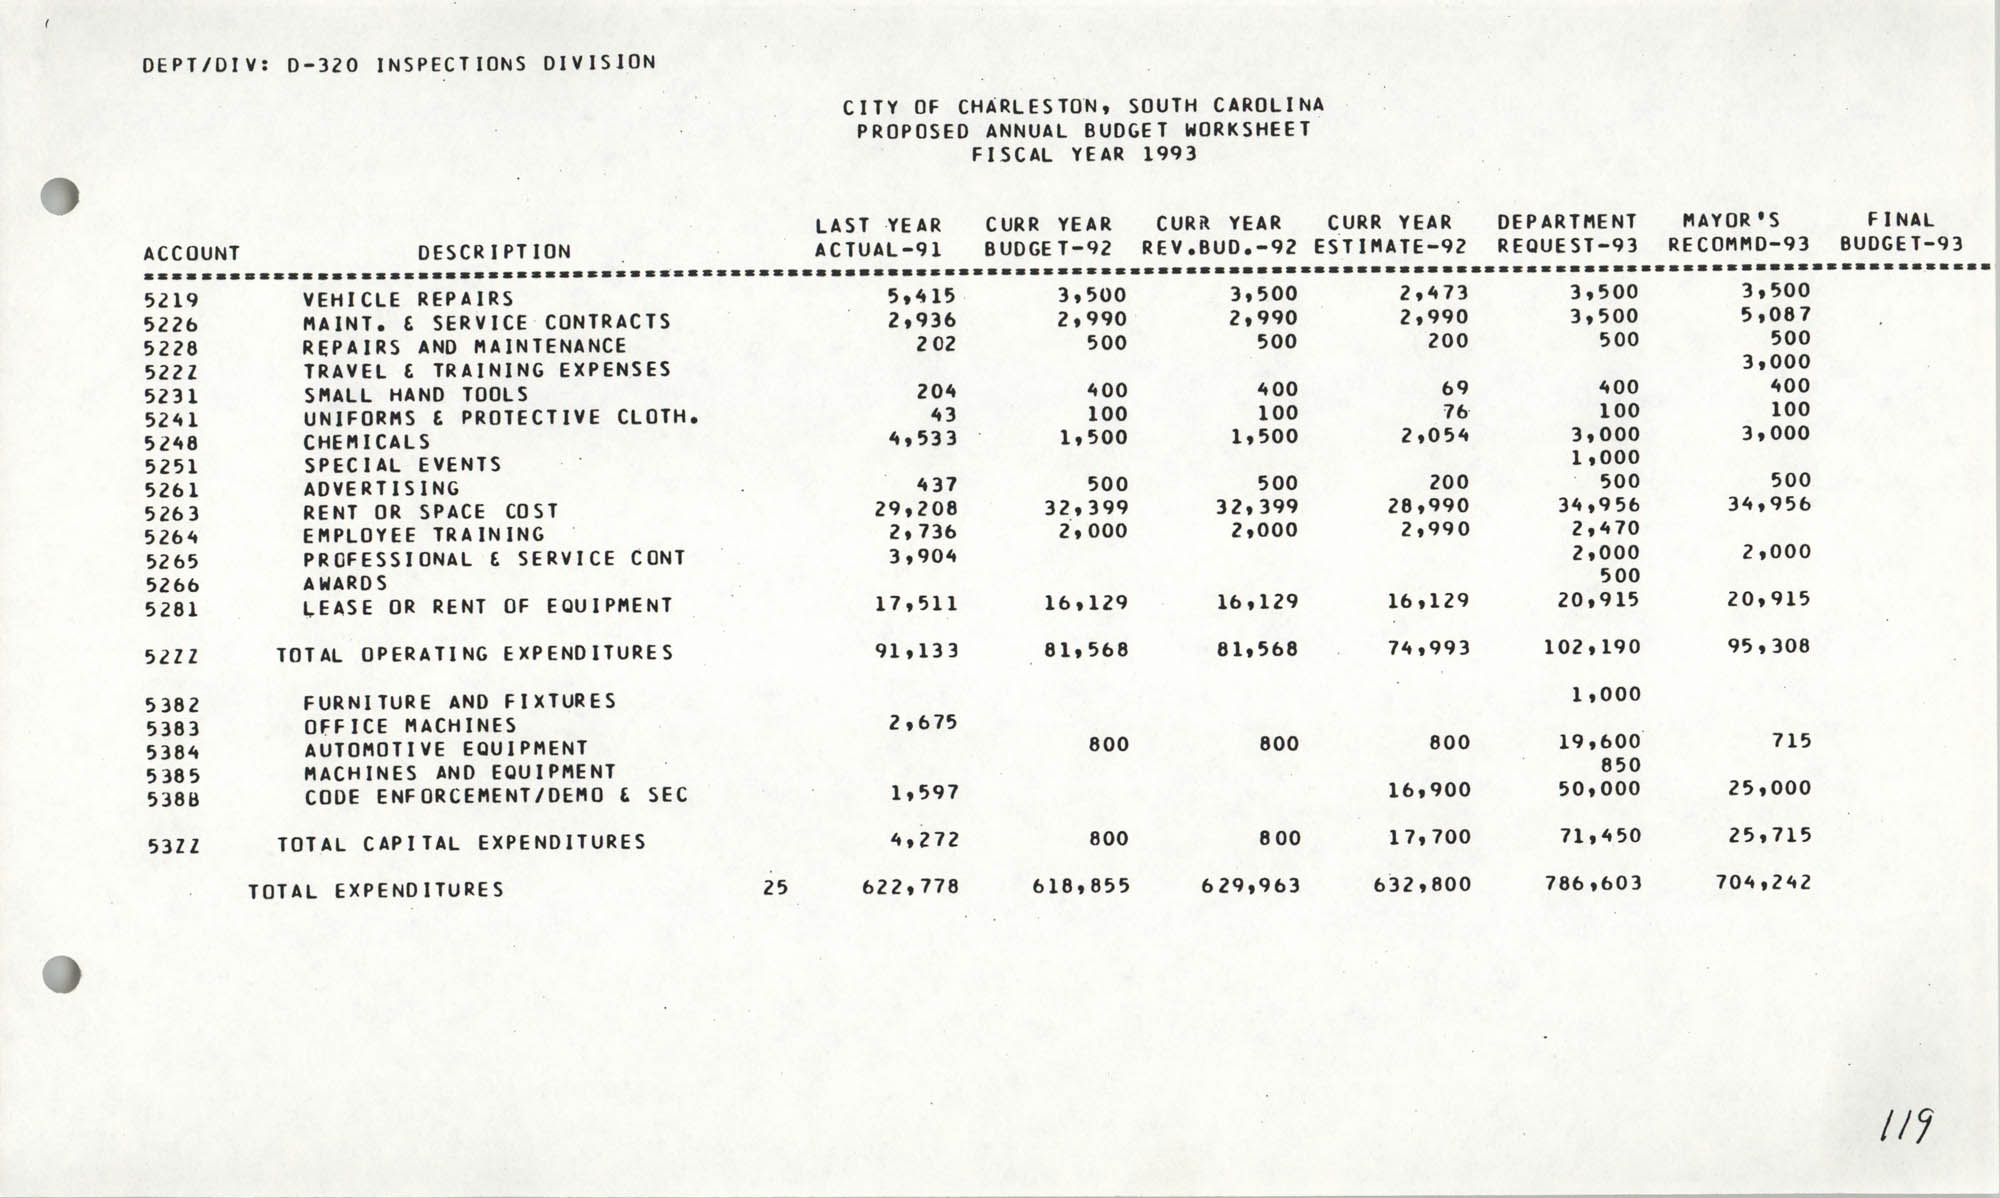 The City Council of Charleston, South Carolina, 1993 Budget, Page 119